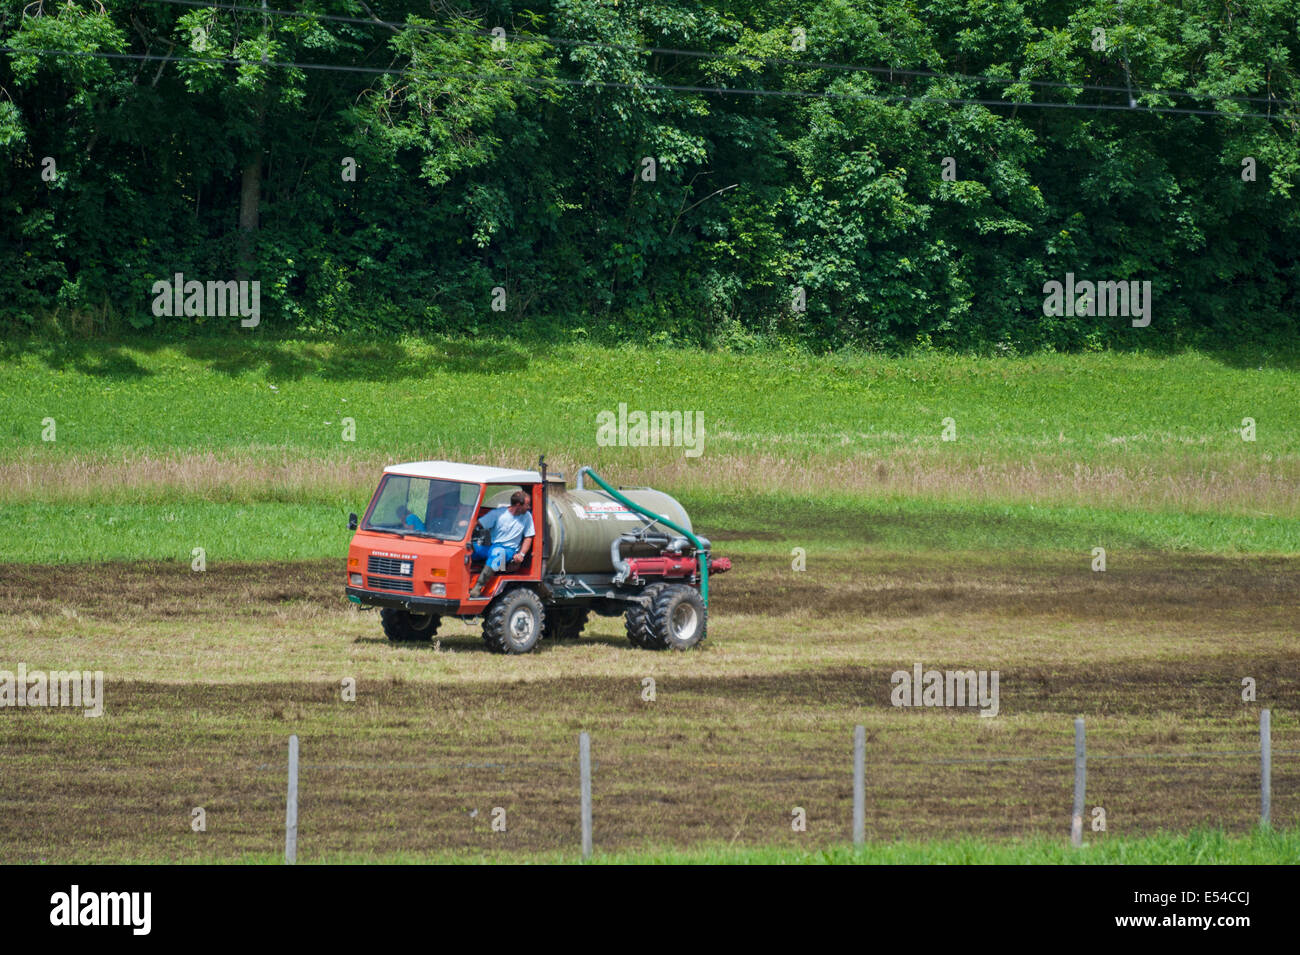 A Swiss farmer spreading muck on his hayfield. - Stock Image